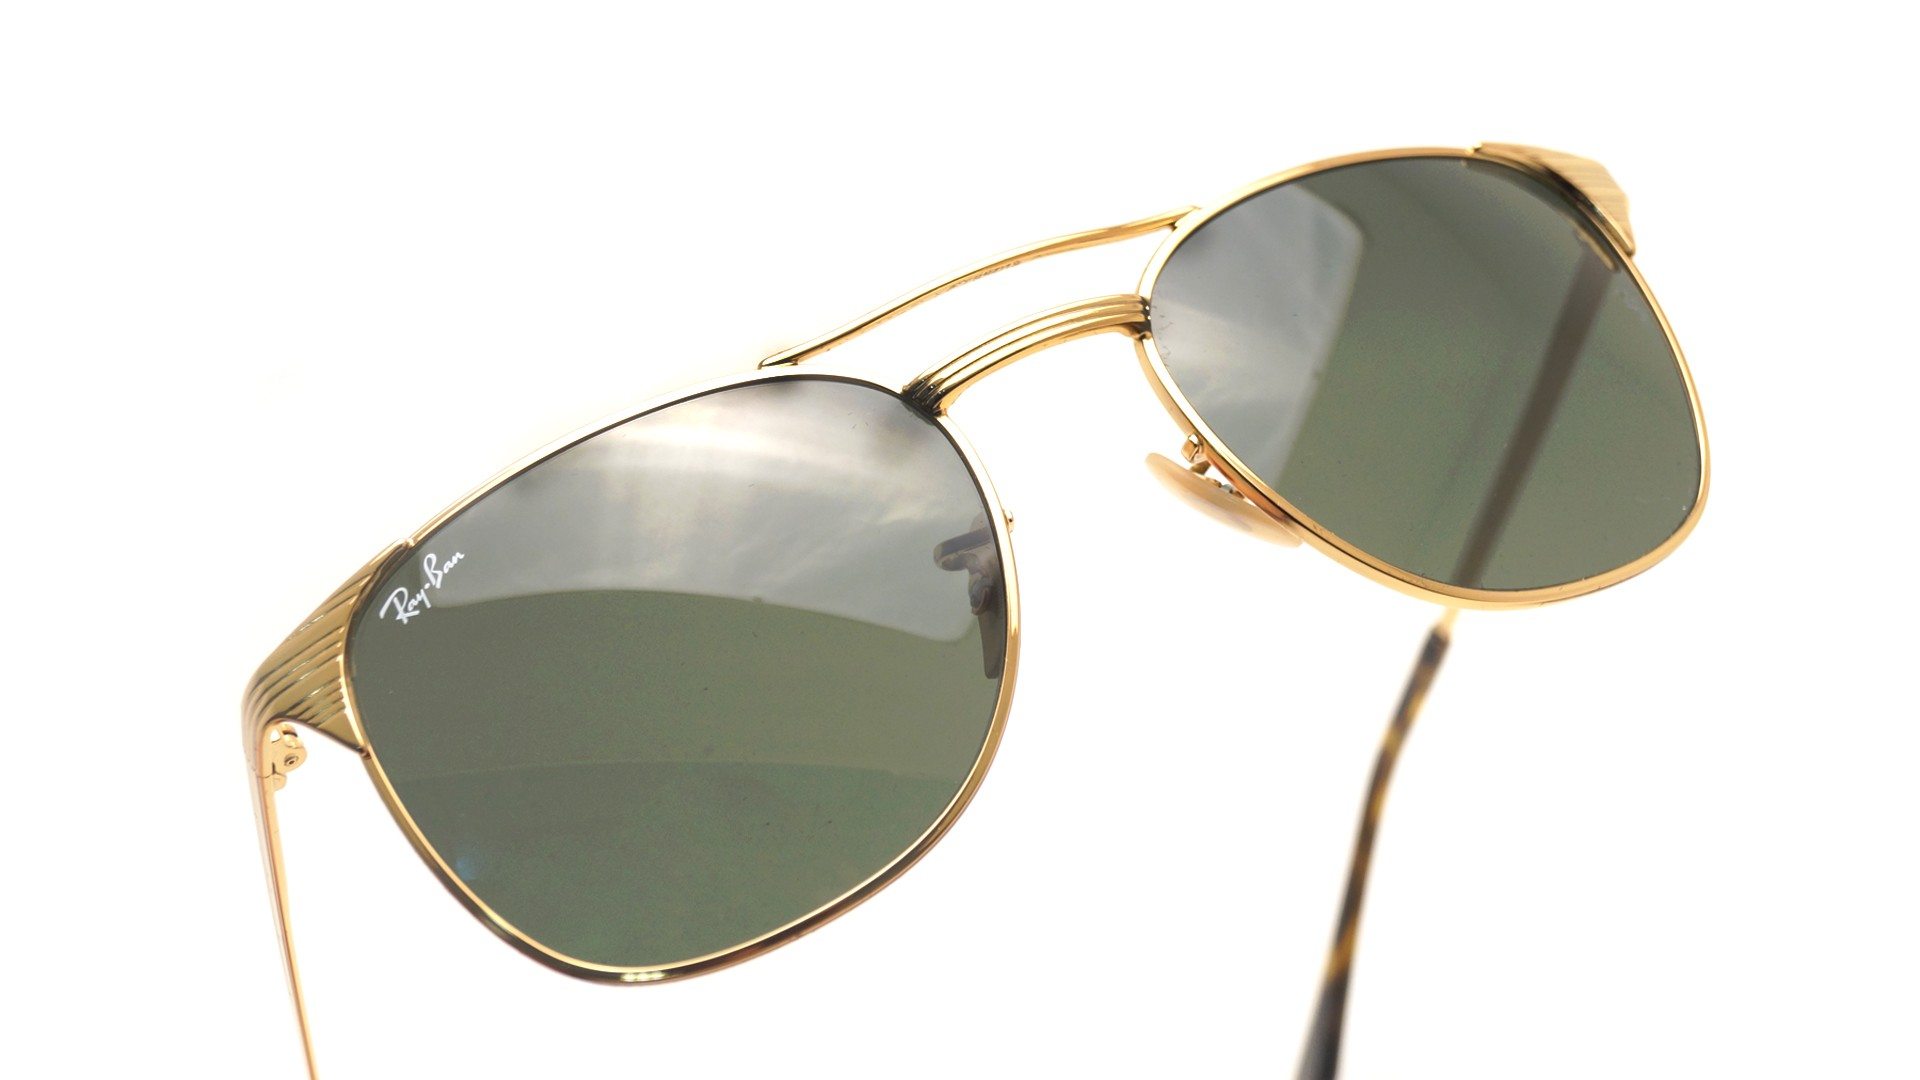 7d2786fae4 Ray-Ban Signet Gold RB3429M 001 55-19